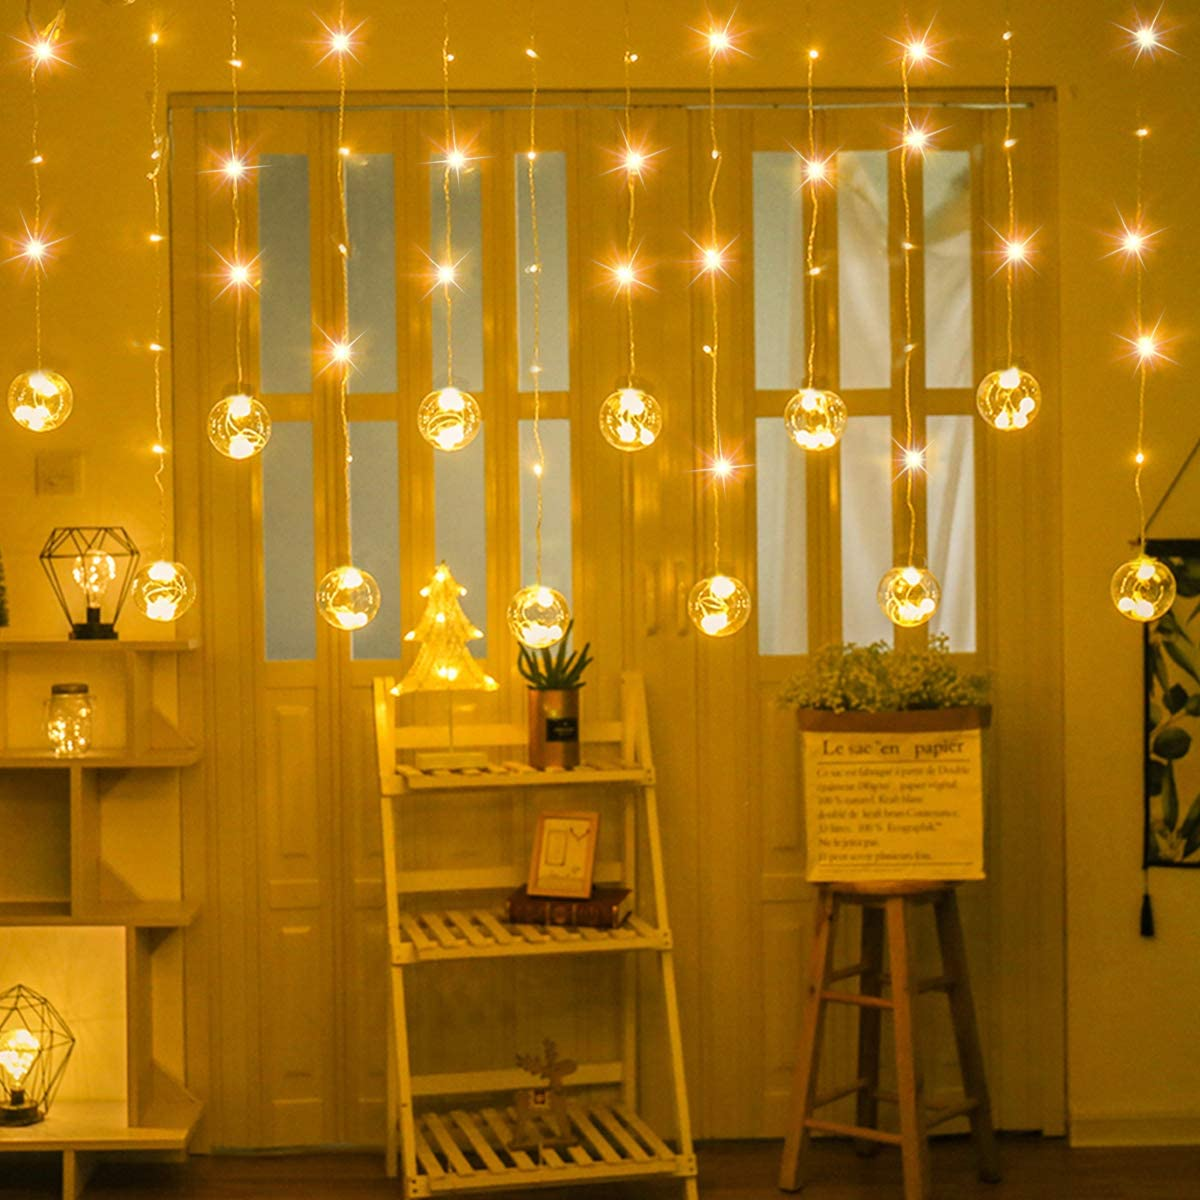 SUPERNIGHT LED Curtain Lights with Crystal Ball, Globe Window Twinkle Fairy String Light Waterproof for Patio,Lawn,Garden,Wedding,DIY Christmas Tree Decoration 9.8 x 9.8 ft,8 Modes,Warm White